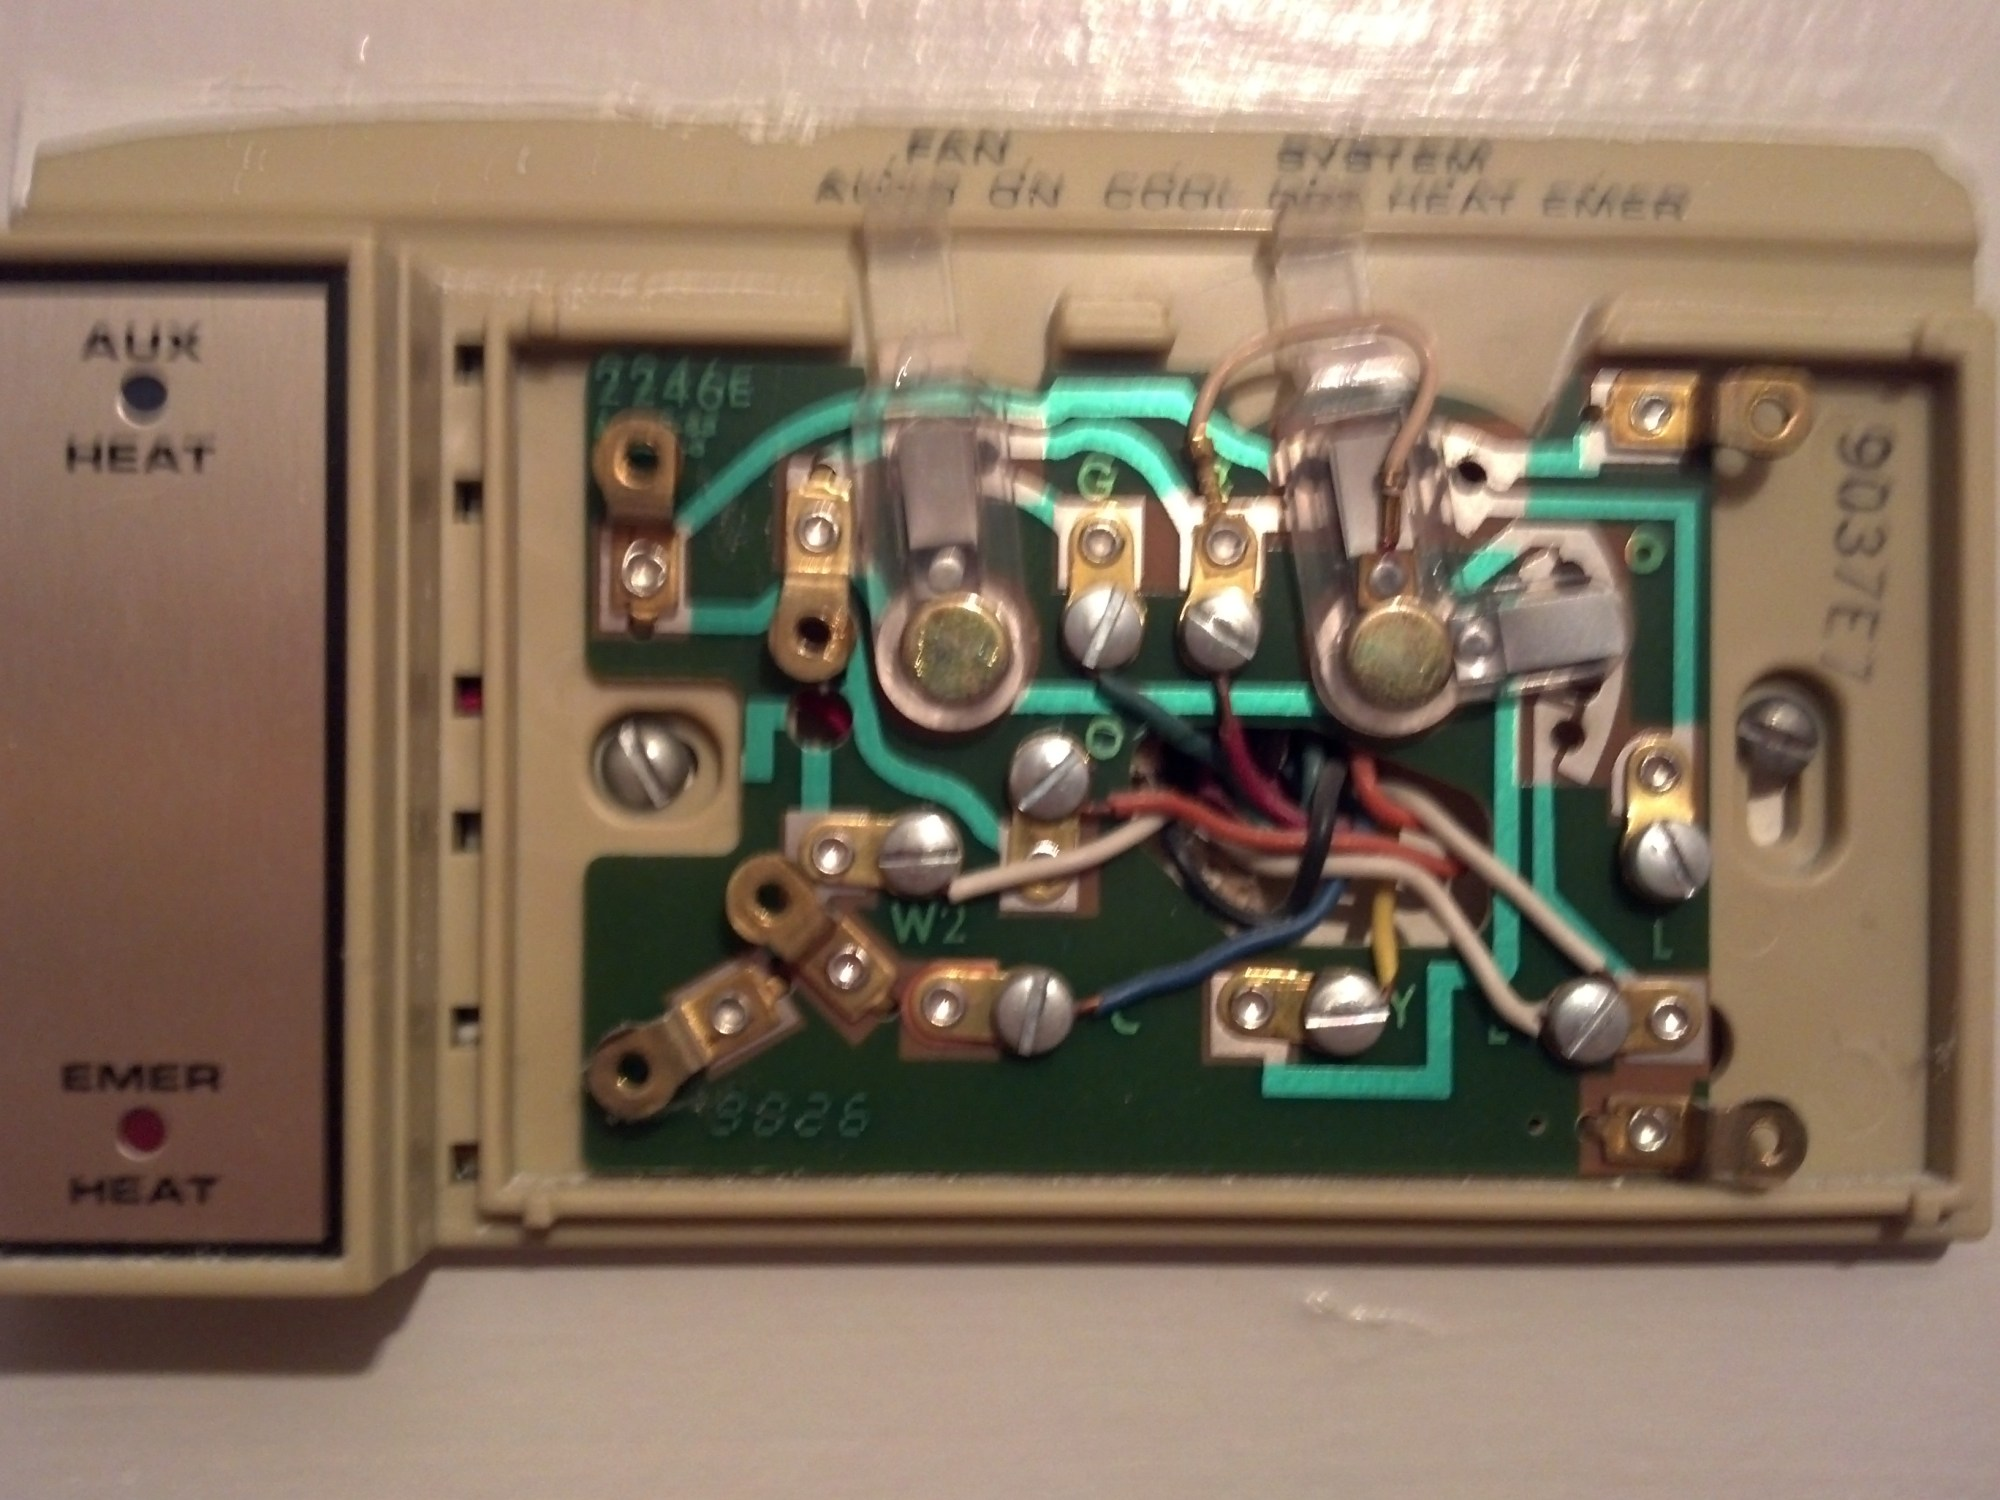 hight resolution of white rodgers thermostat wiring diagram additionally white rodgers